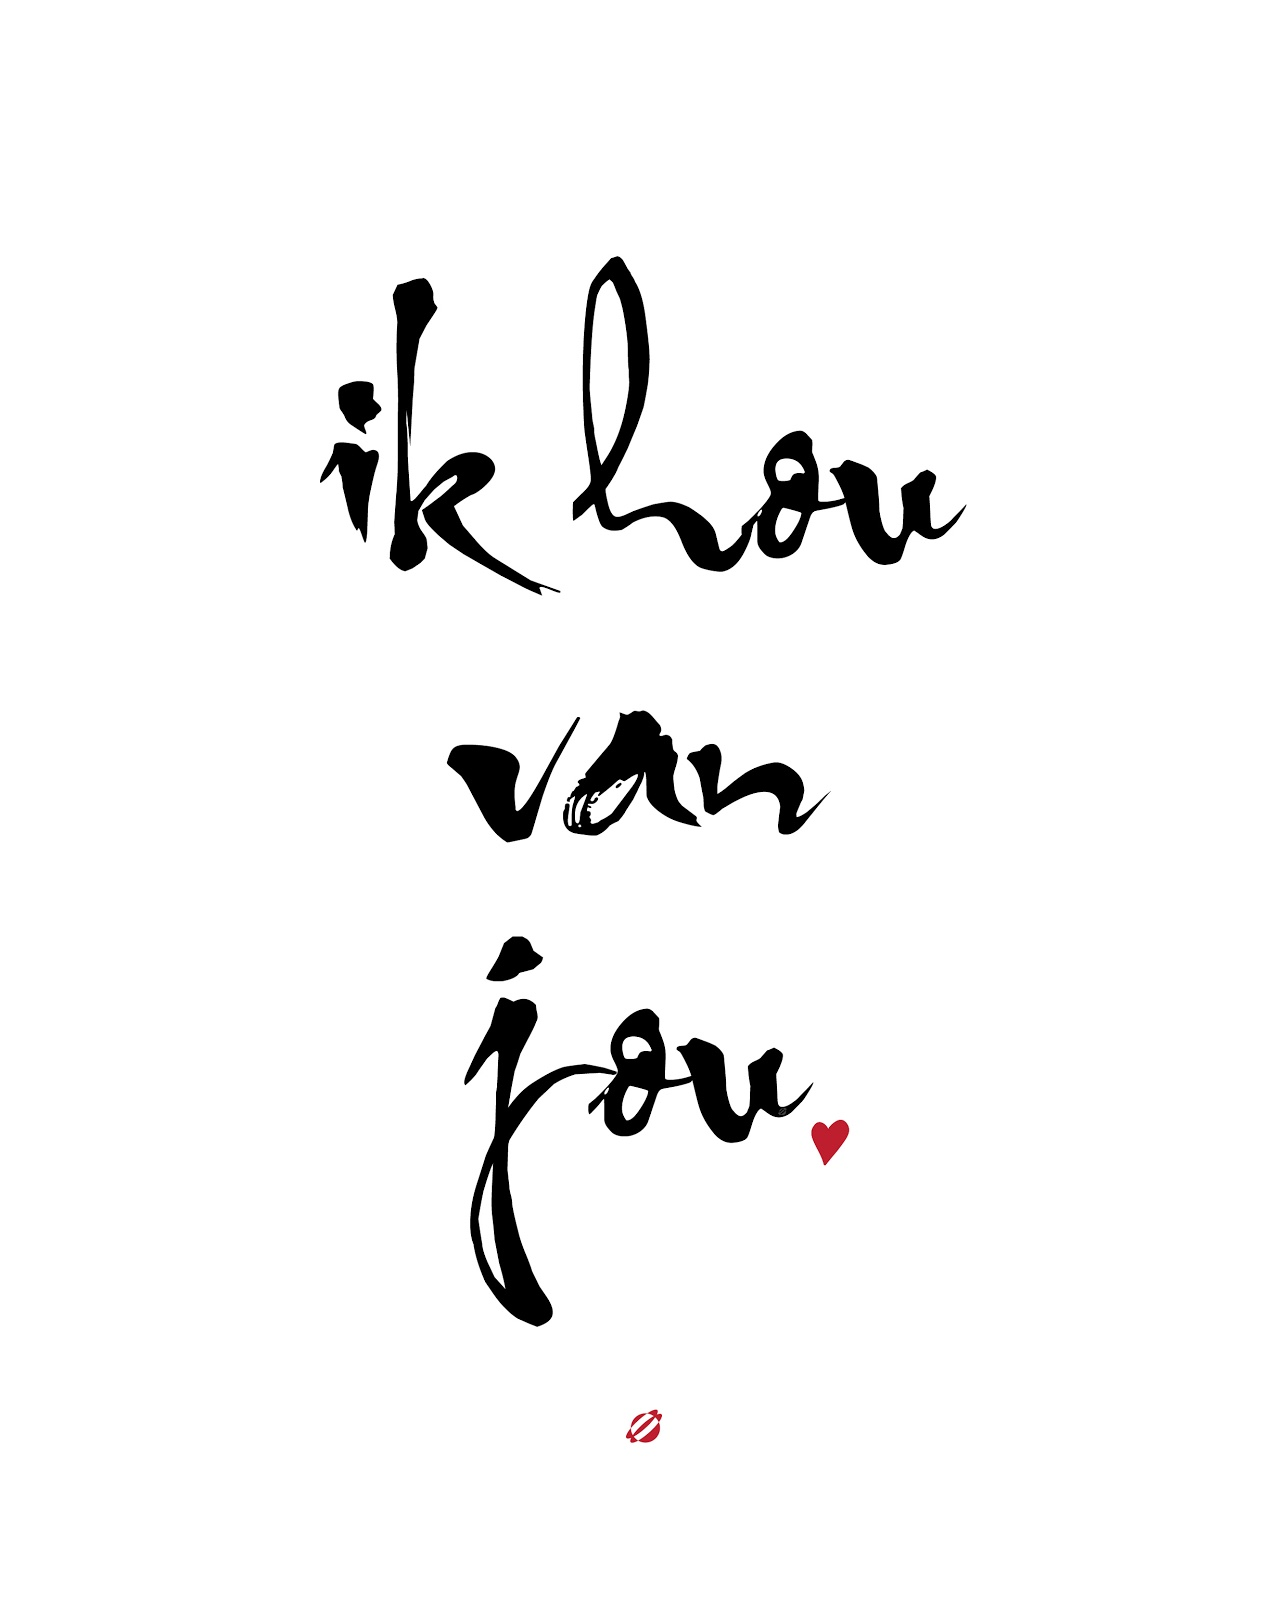 LostBumblebee ©2014 Ik you van jou - I love you - Free Printable Personal Use Only